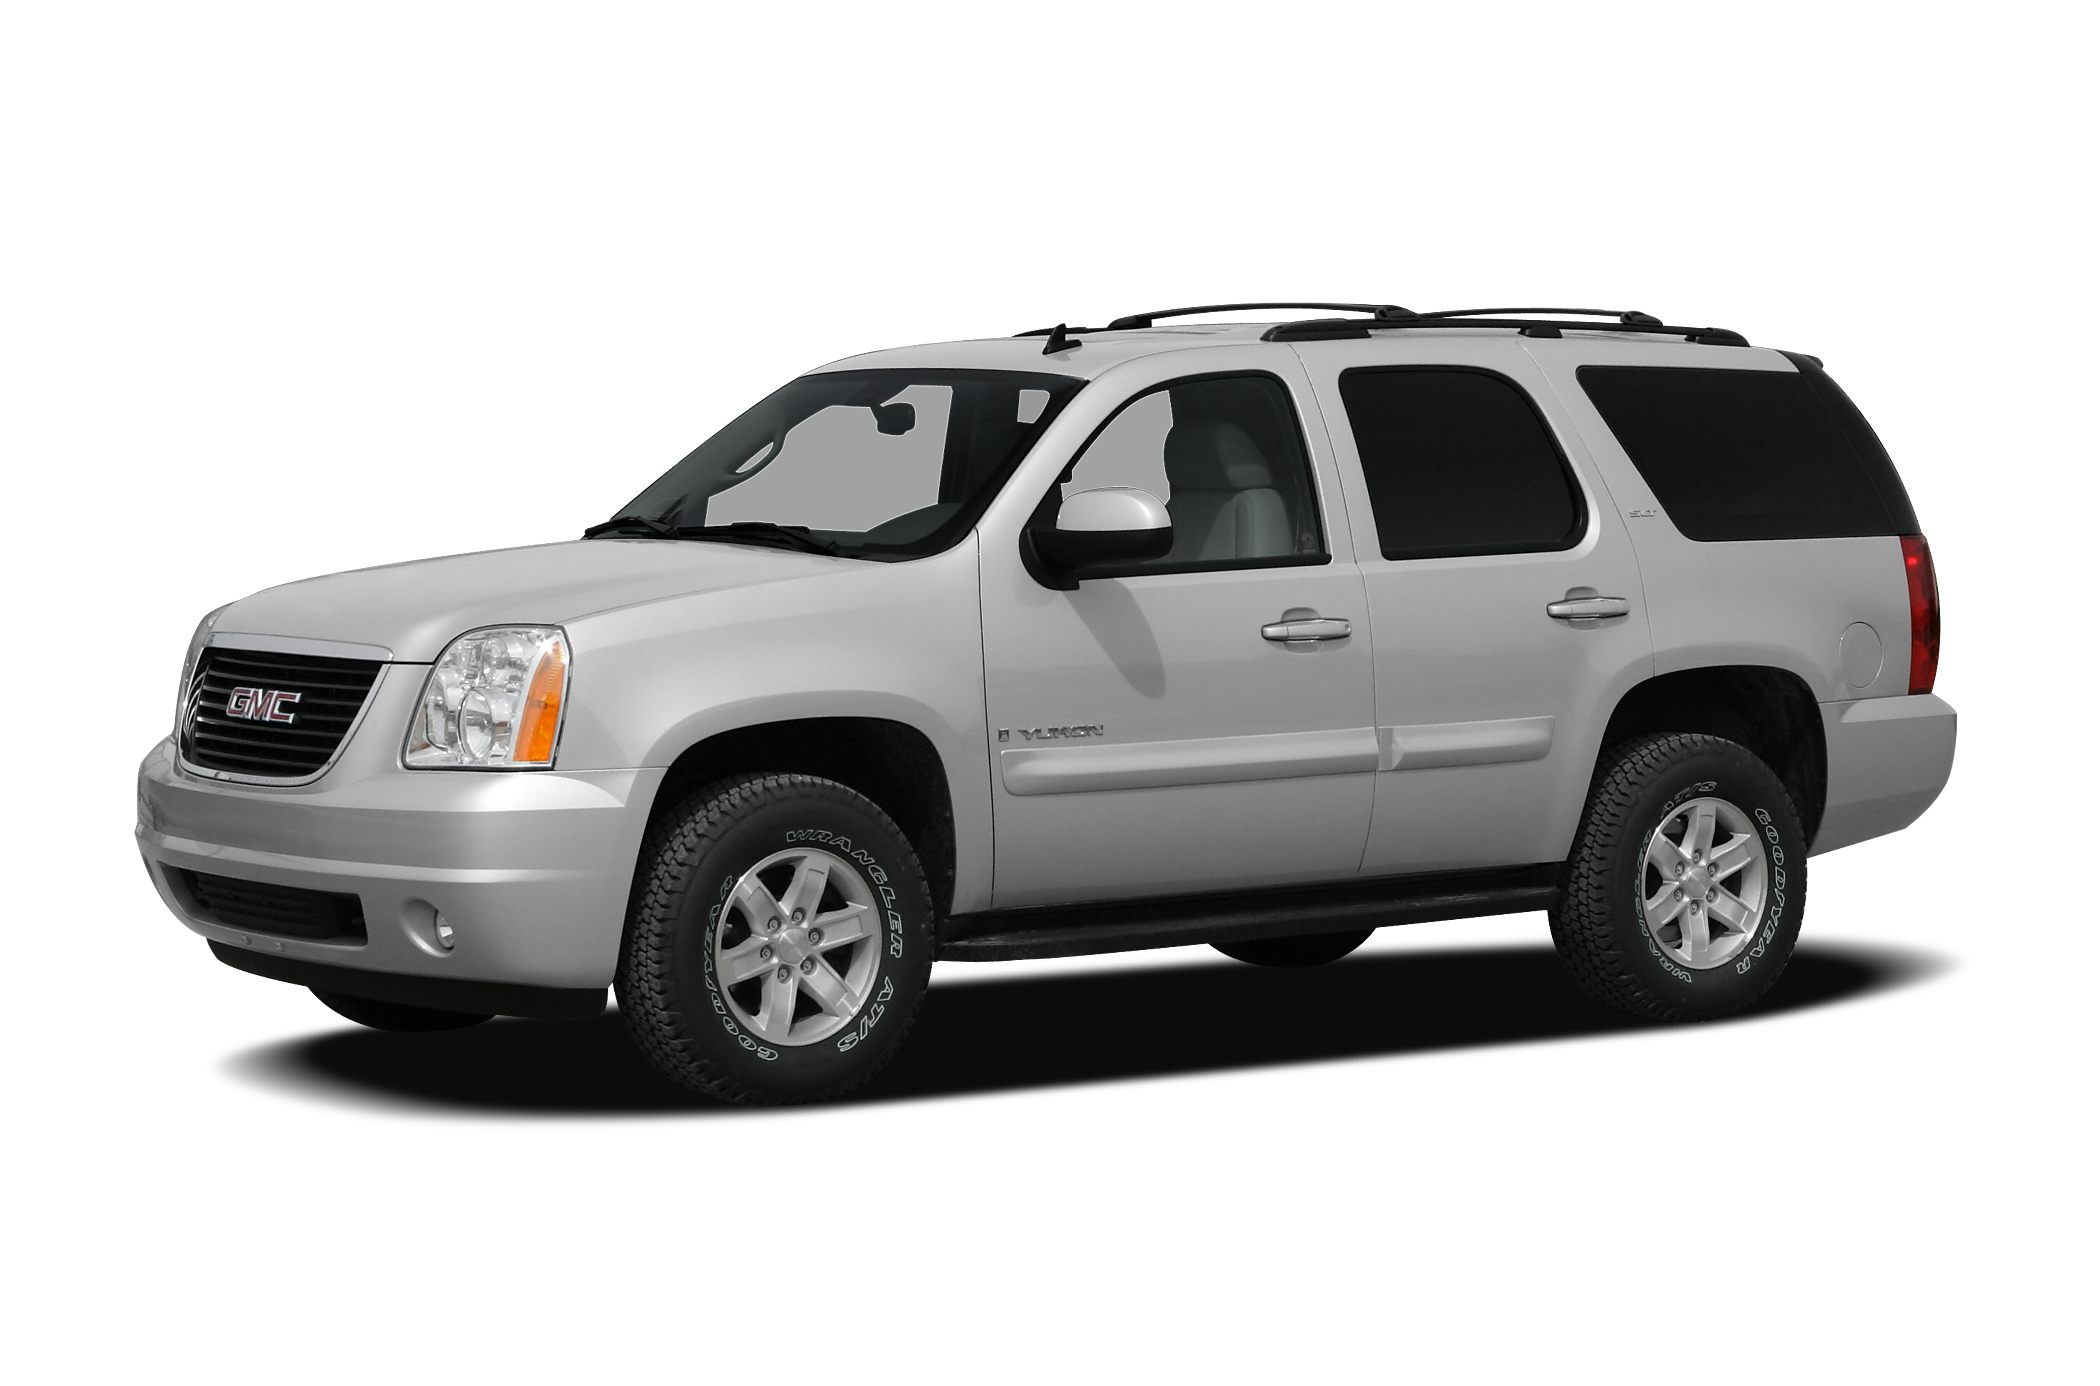 2011 GMC Yukon SLT SUV for sale in El Paso for $32,995 with 53,799 miles